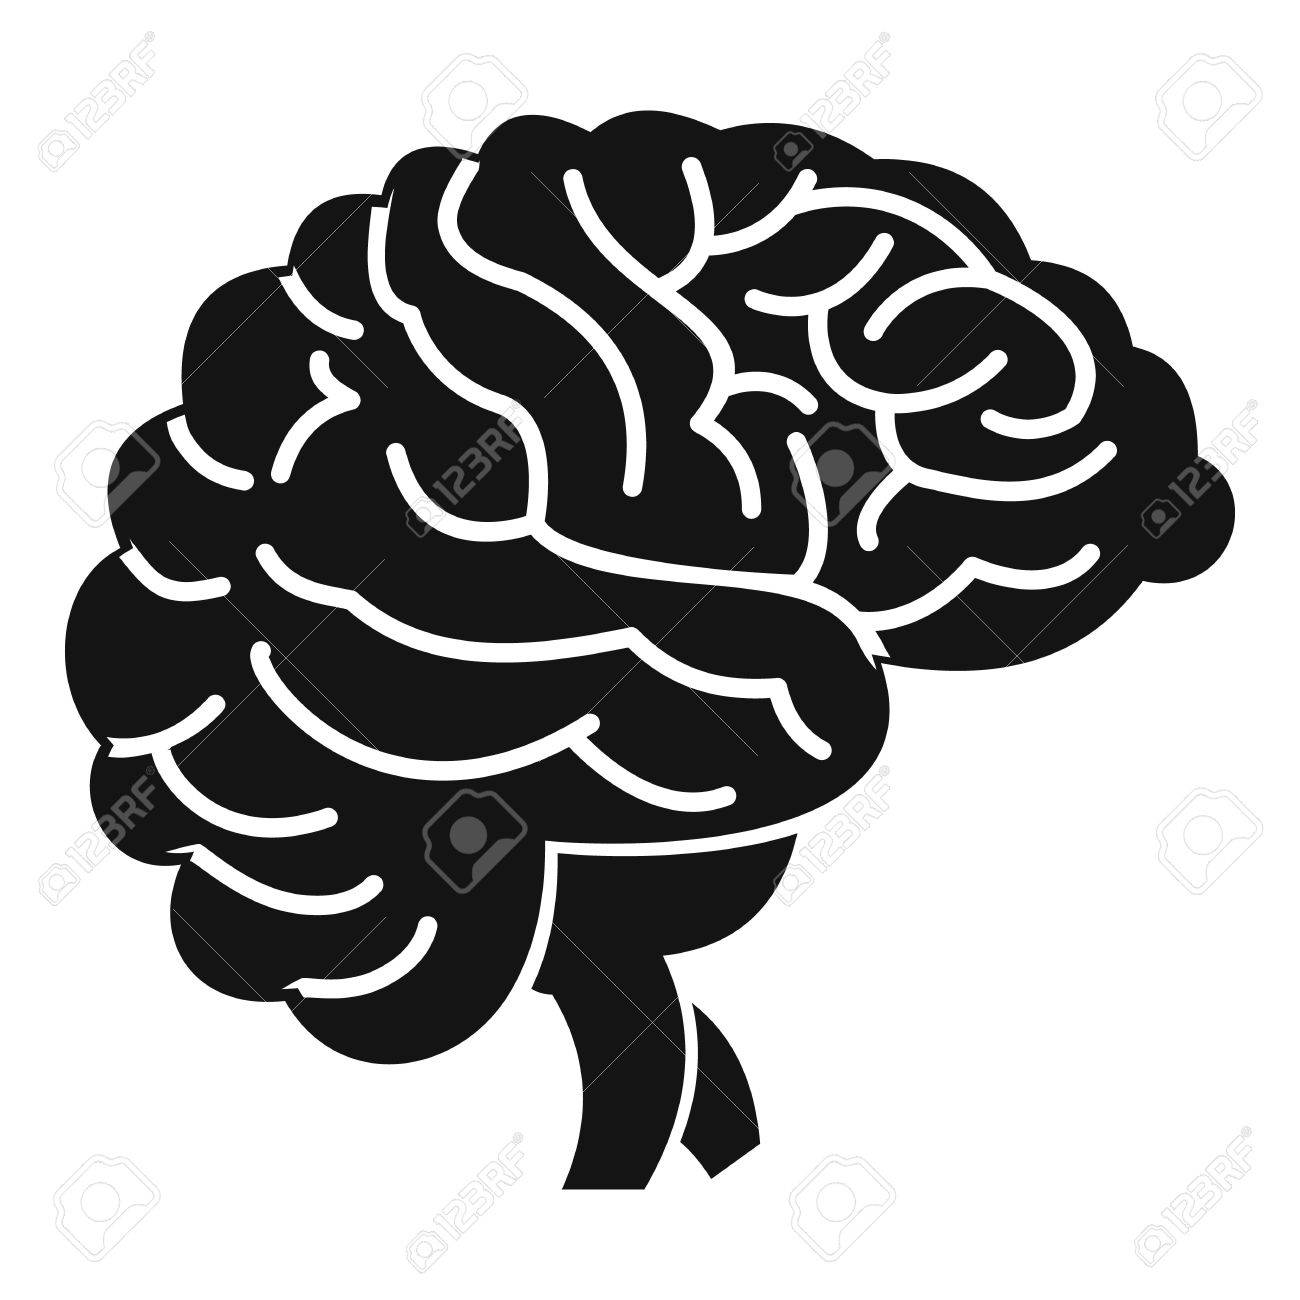 brain icon simple illustration of brain vector icon for web royalty rh 123rf com brain vector graphic brain vector free download